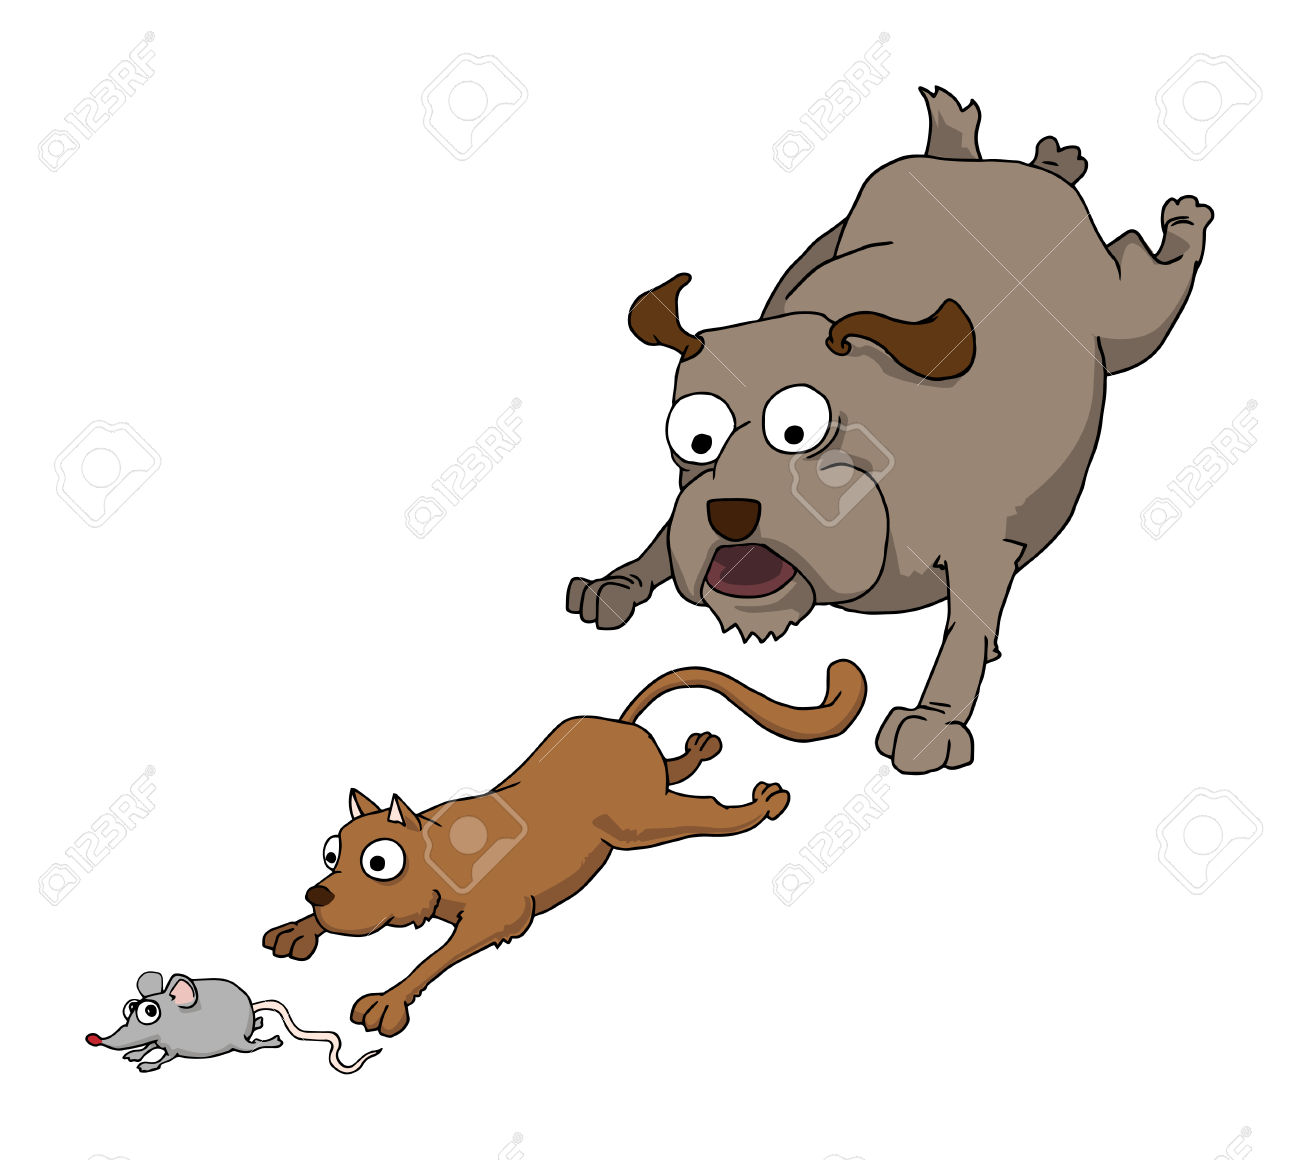 Cartoon Cat And Dog Clipart Free Download Best Cartoon Cat And Dog